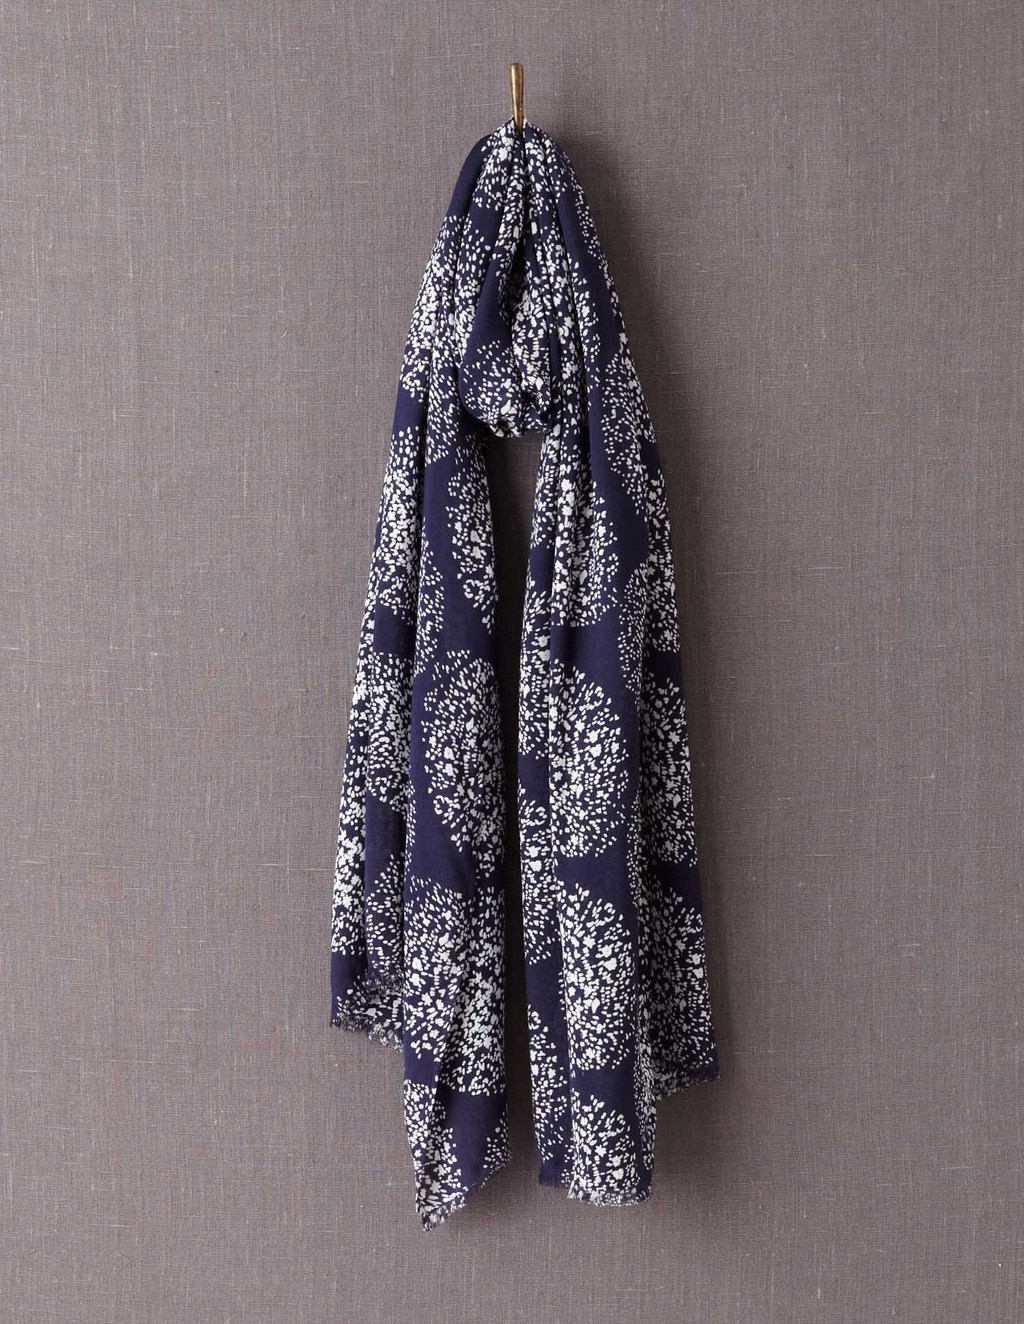 Printed Scarf - secondary colour: white; predominant colour: navy; occasions: casual; type of pattern: heavy; style: regular; size: large; material: fabric; pattern: florals; season: a/w 2013